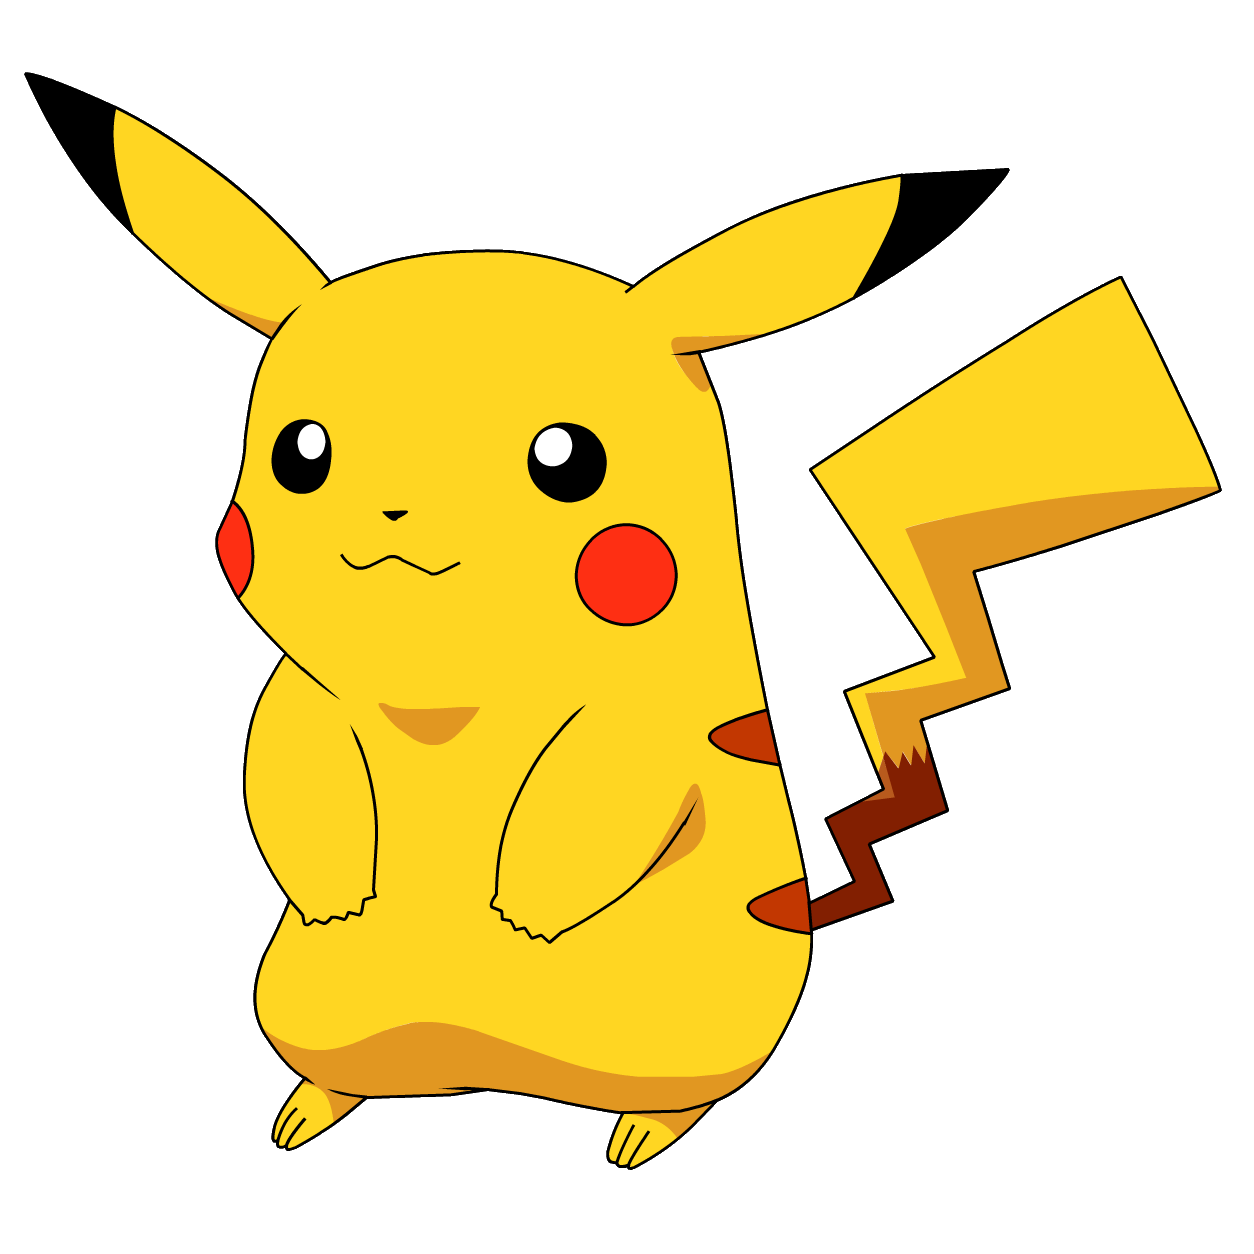 Pokemon Pikachu And Raichu Images